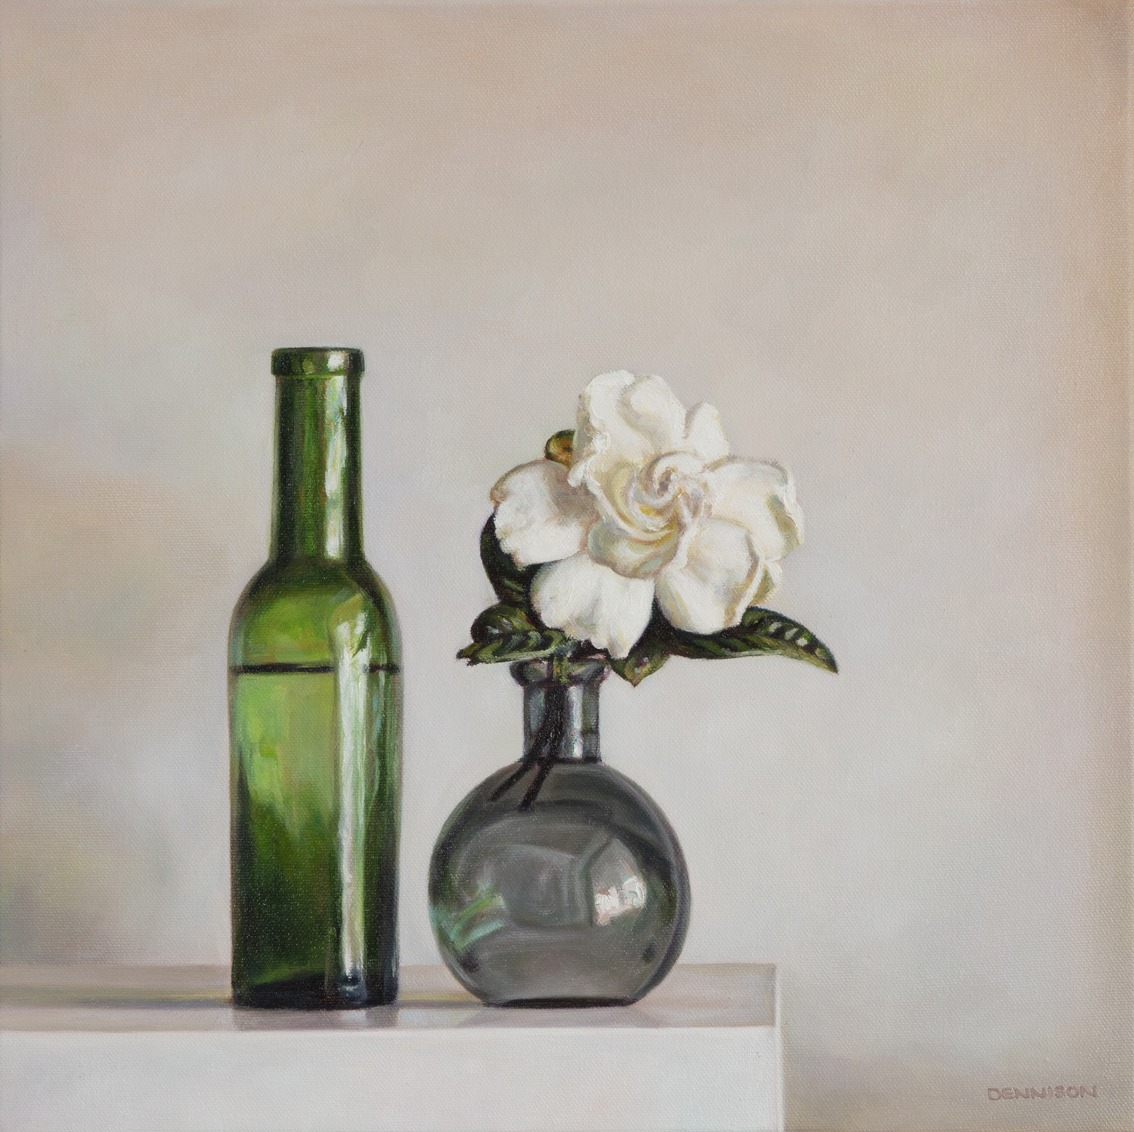 Gardenia and Green Bottle   Oil on Canvas, 40 x 40cm, SOLD